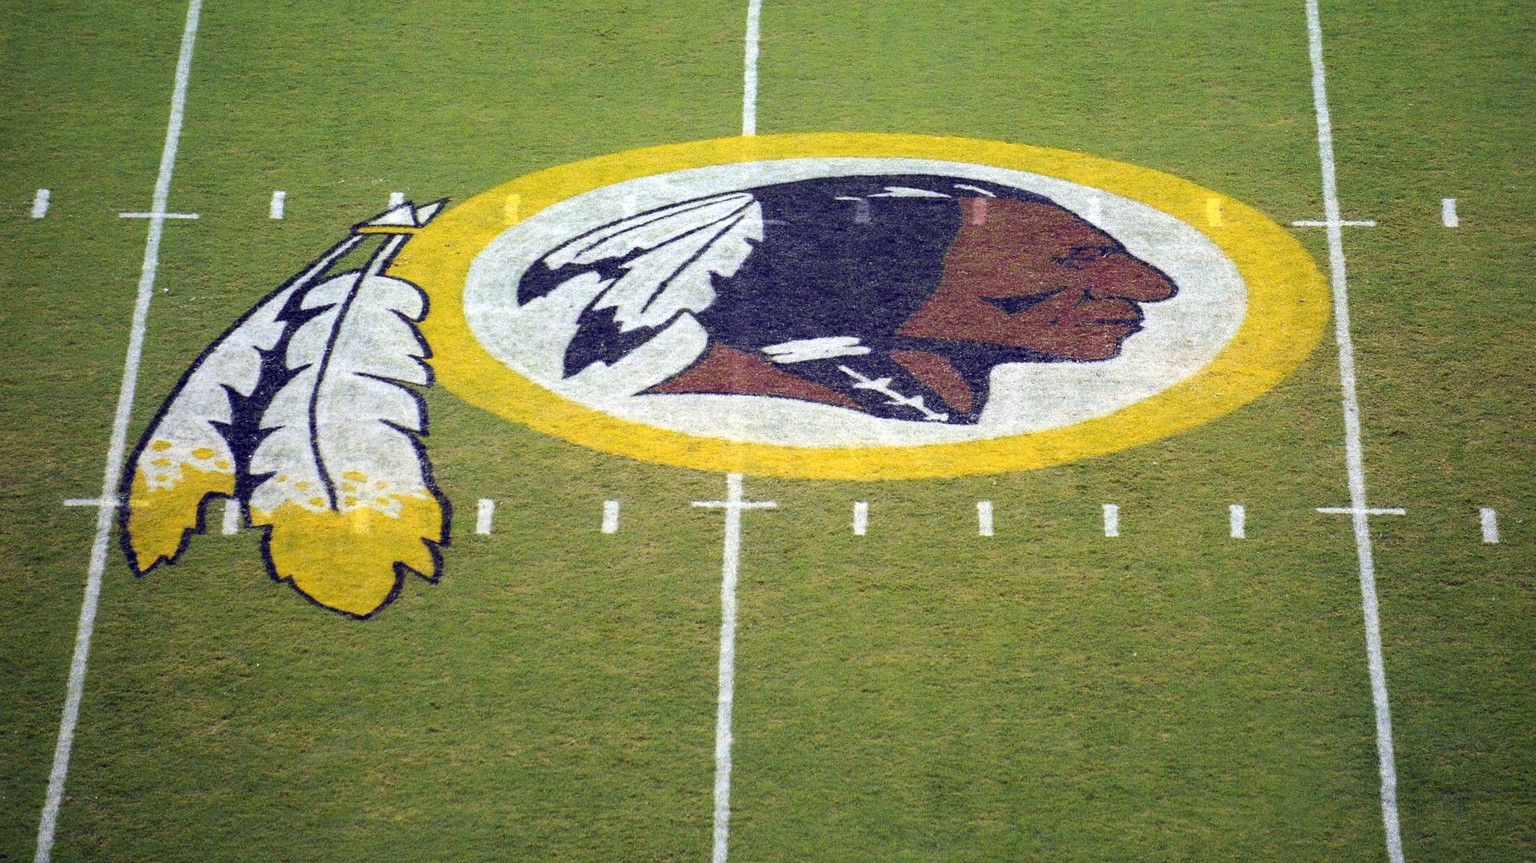 FILE - In this Aug. 28, 2009 file photo, the Washington Redskins logo is shown on the field before the start of a preseason NFL football game against the New England Patriots in Landover, Md. The Washington Redskins are undergoing what the team calls a